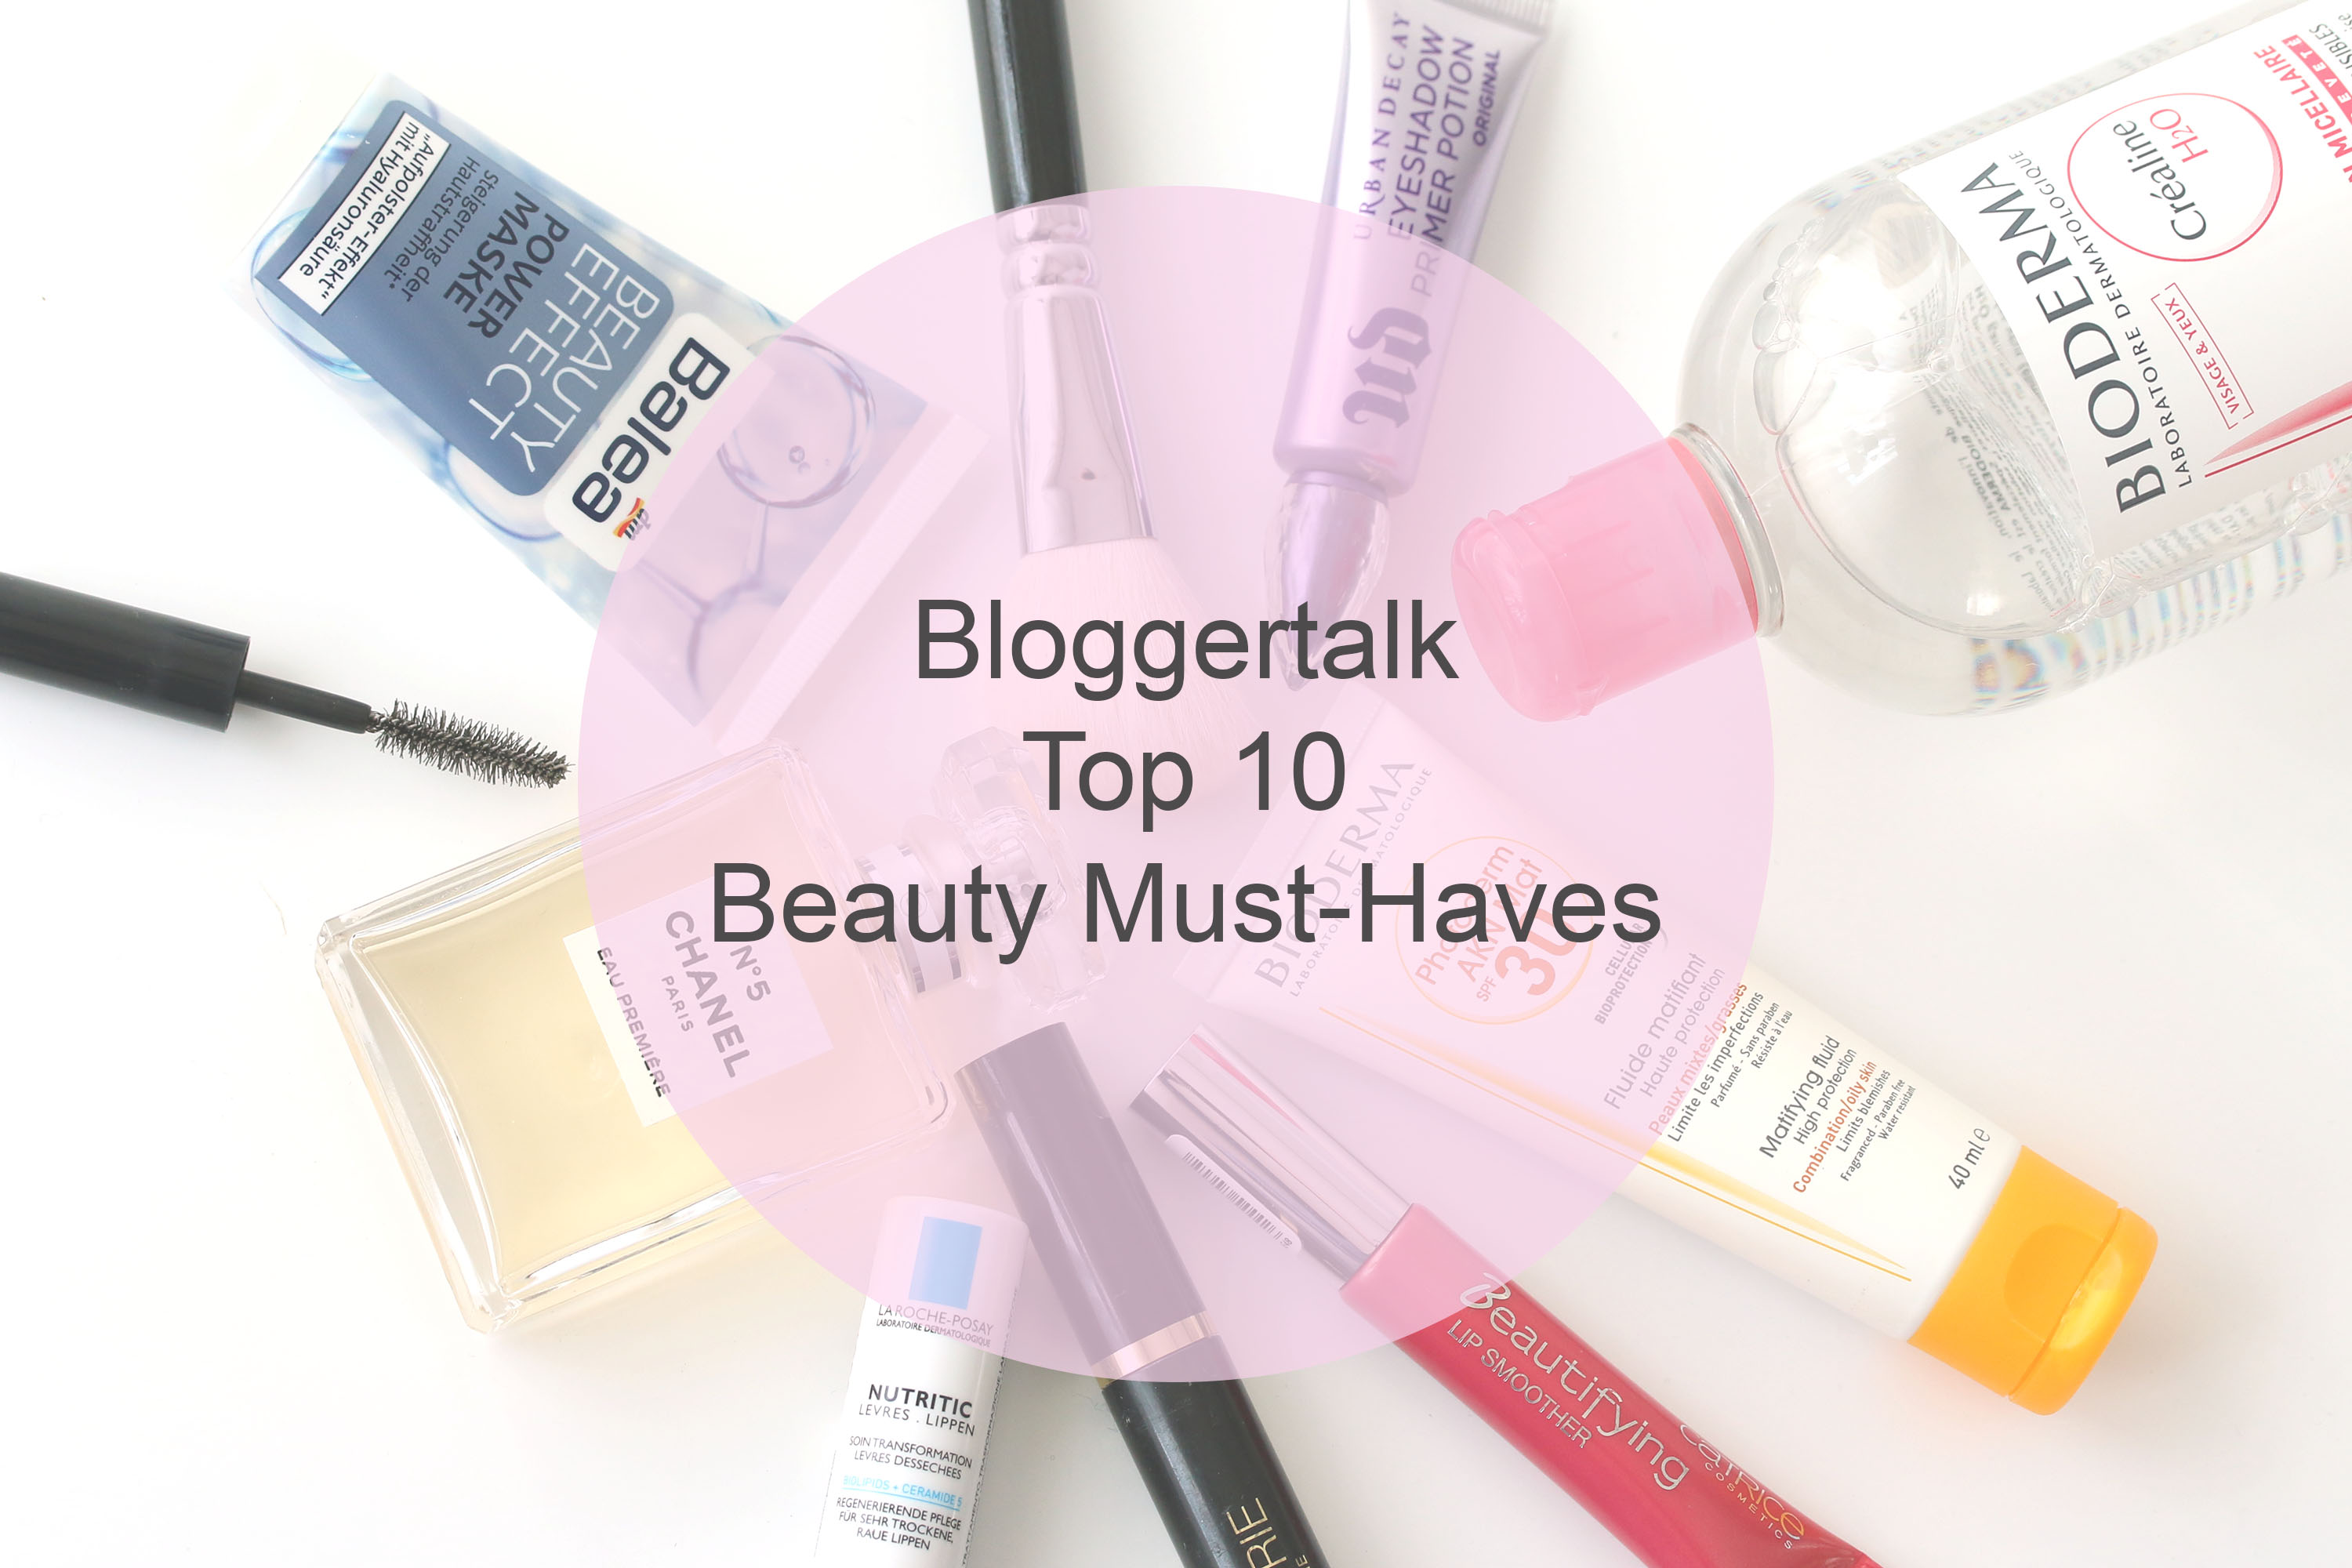 Beauty Must-Have Top 10